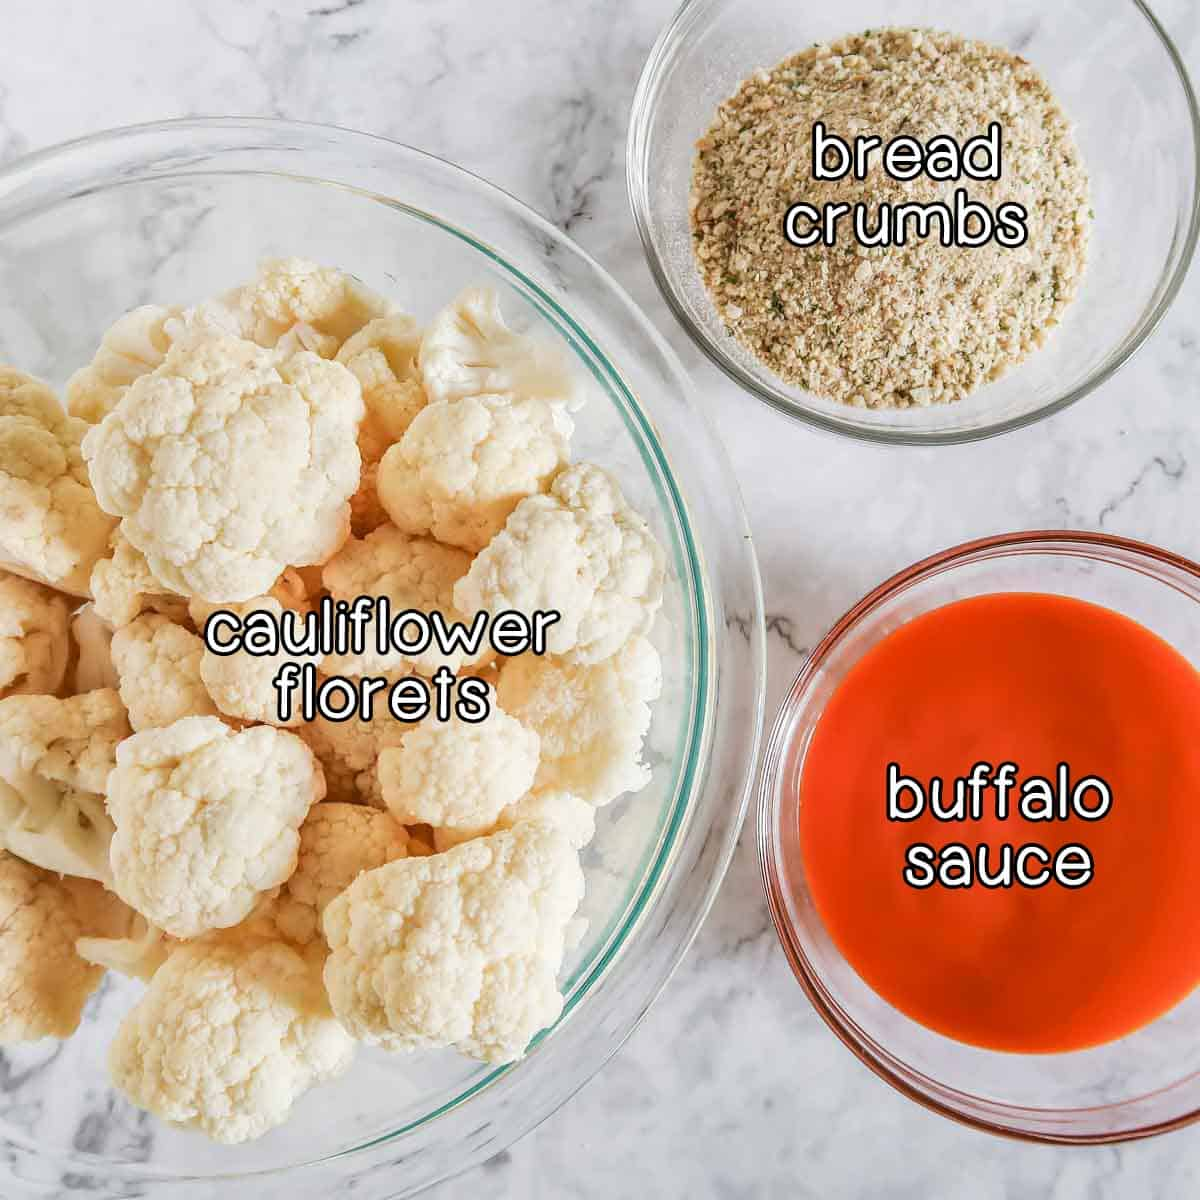 Overhead shot of ingredients- cauliflower florets, bread crumbs, and buffalo sauce.